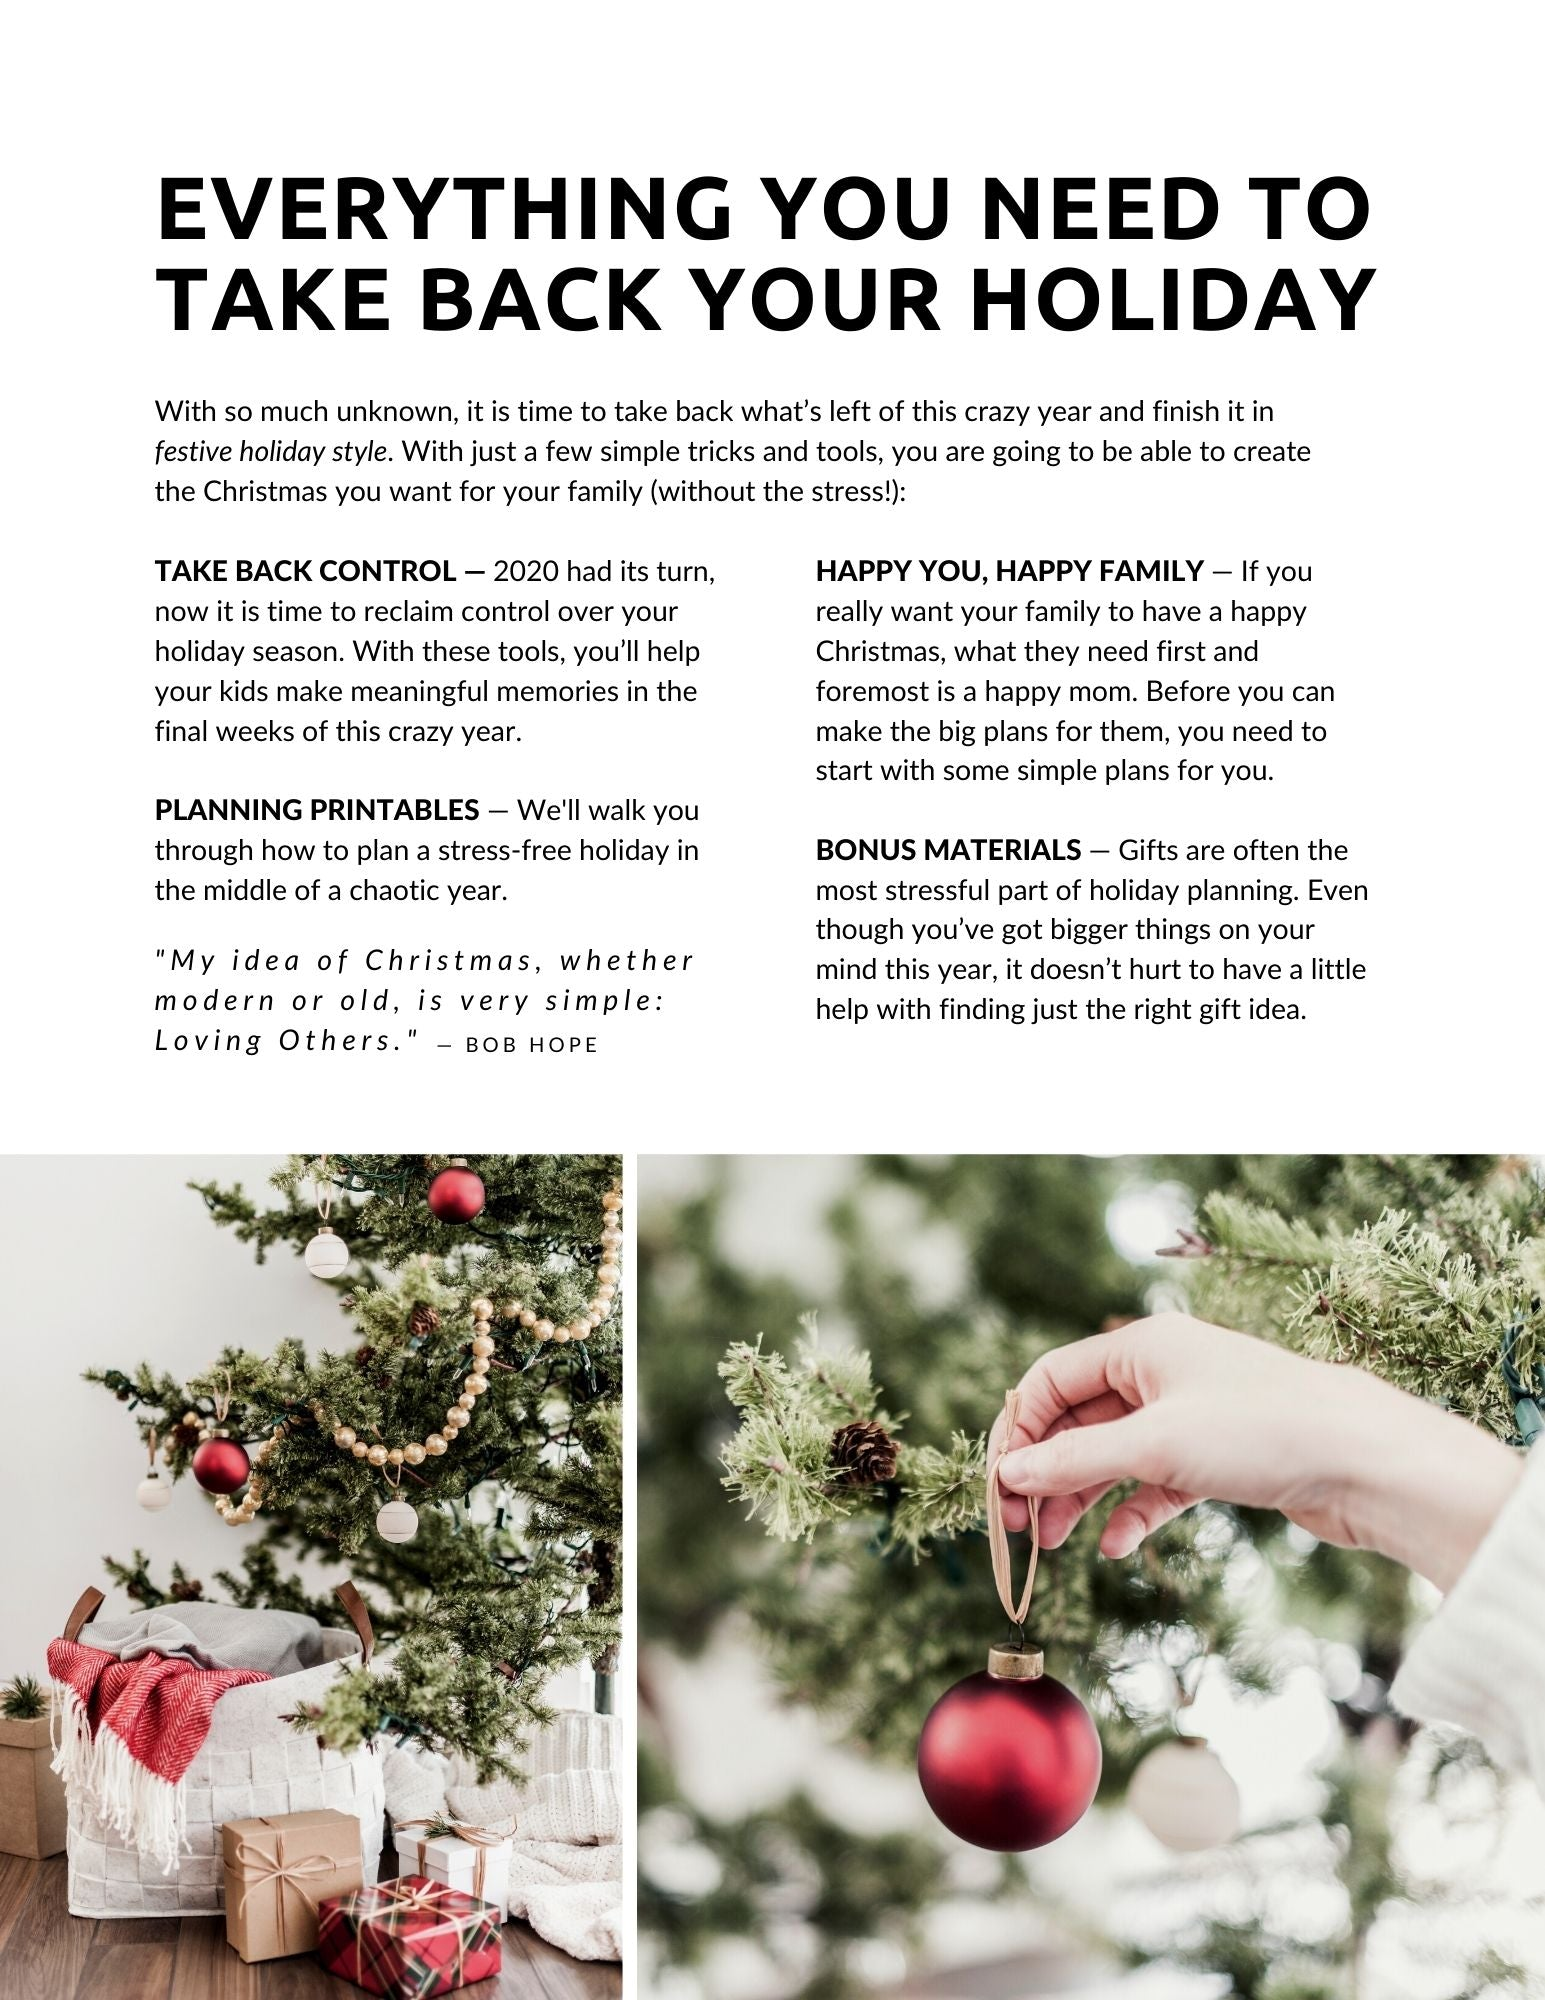 Take Back Your Holiday — Enjoy A Stress-Free & Simple Christmas This Year